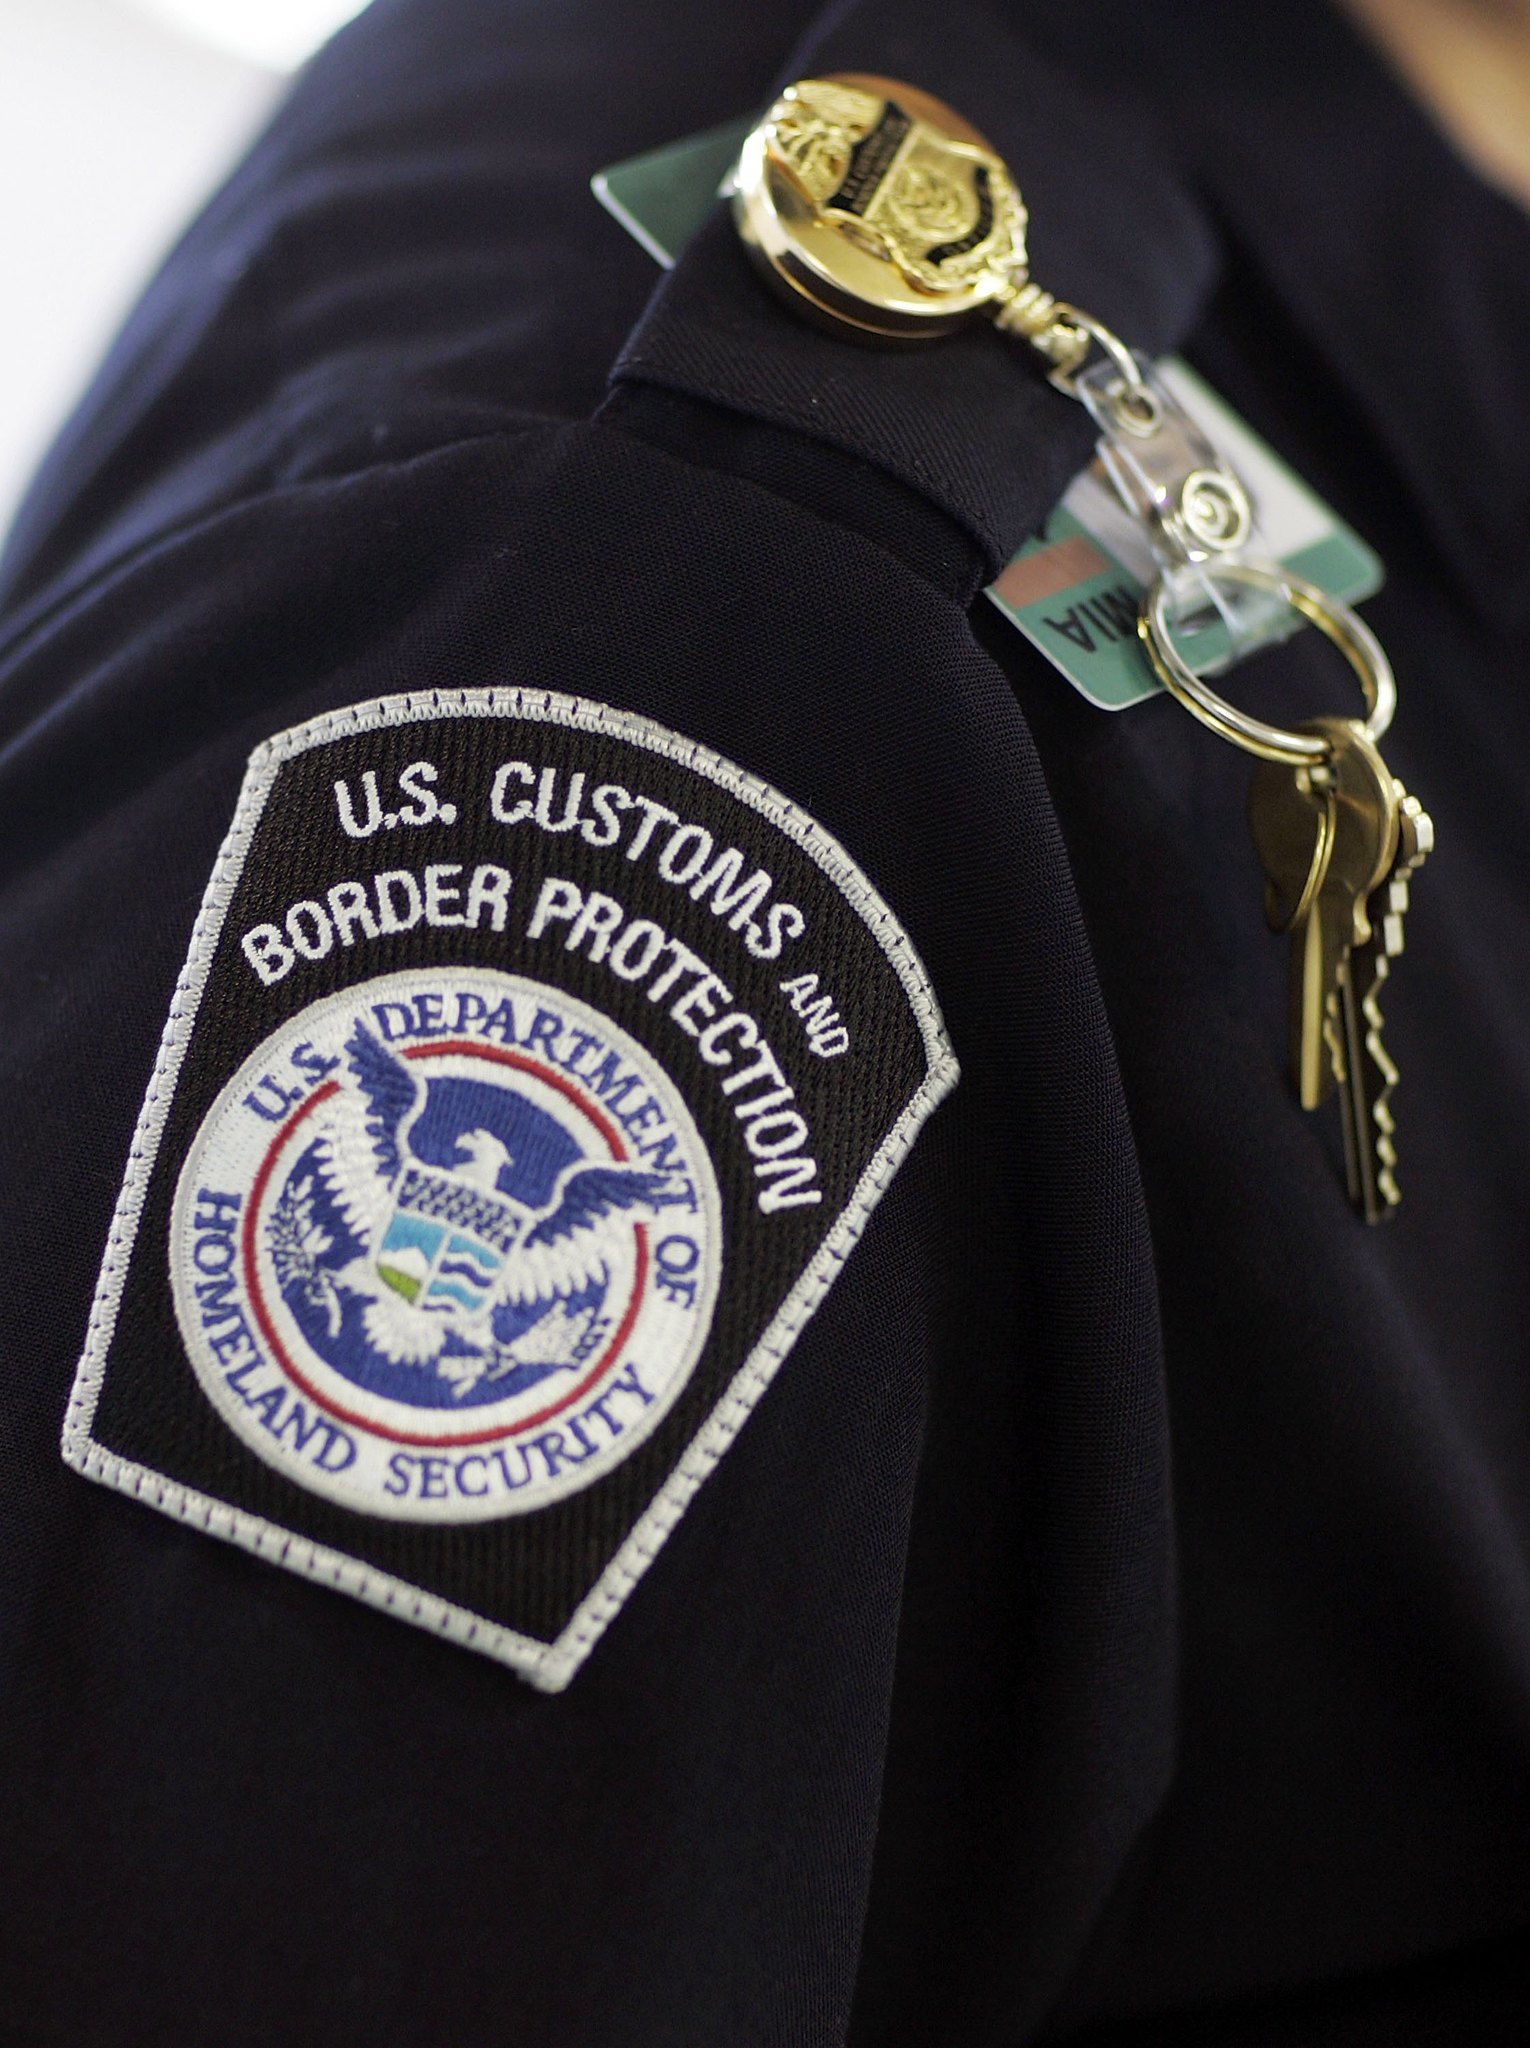 In horrifying detail, women accuse U.S. customs officers of invasive body searches